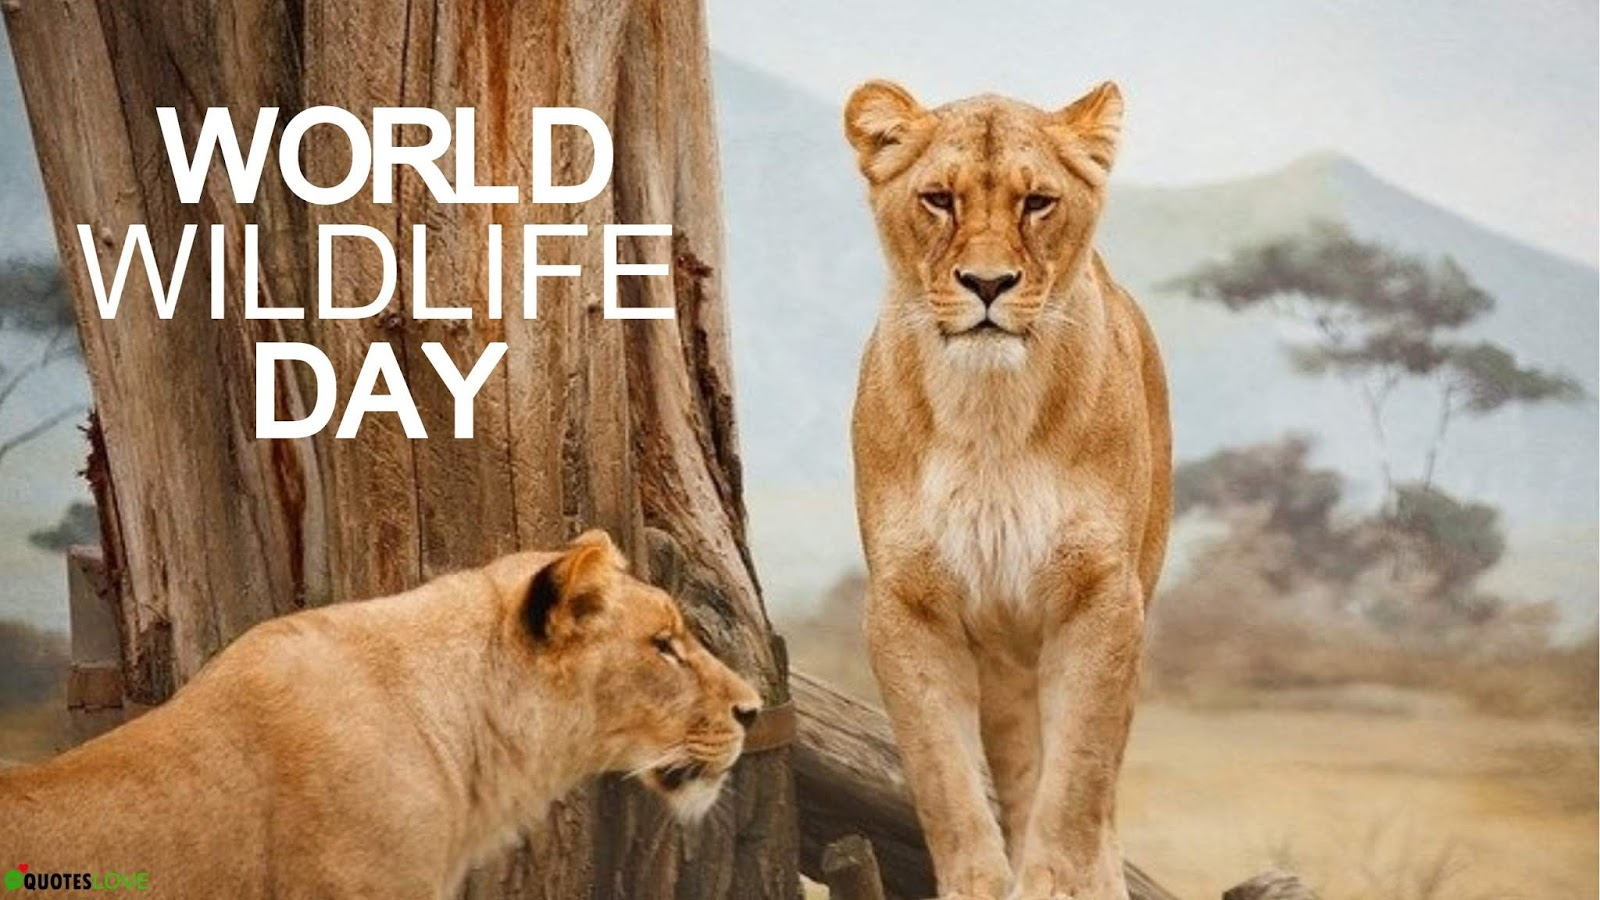 World Wildlife Day Quotes, Slogans, Wishes, Themes, Hashtags, Images, Posters, Drawing, Logo